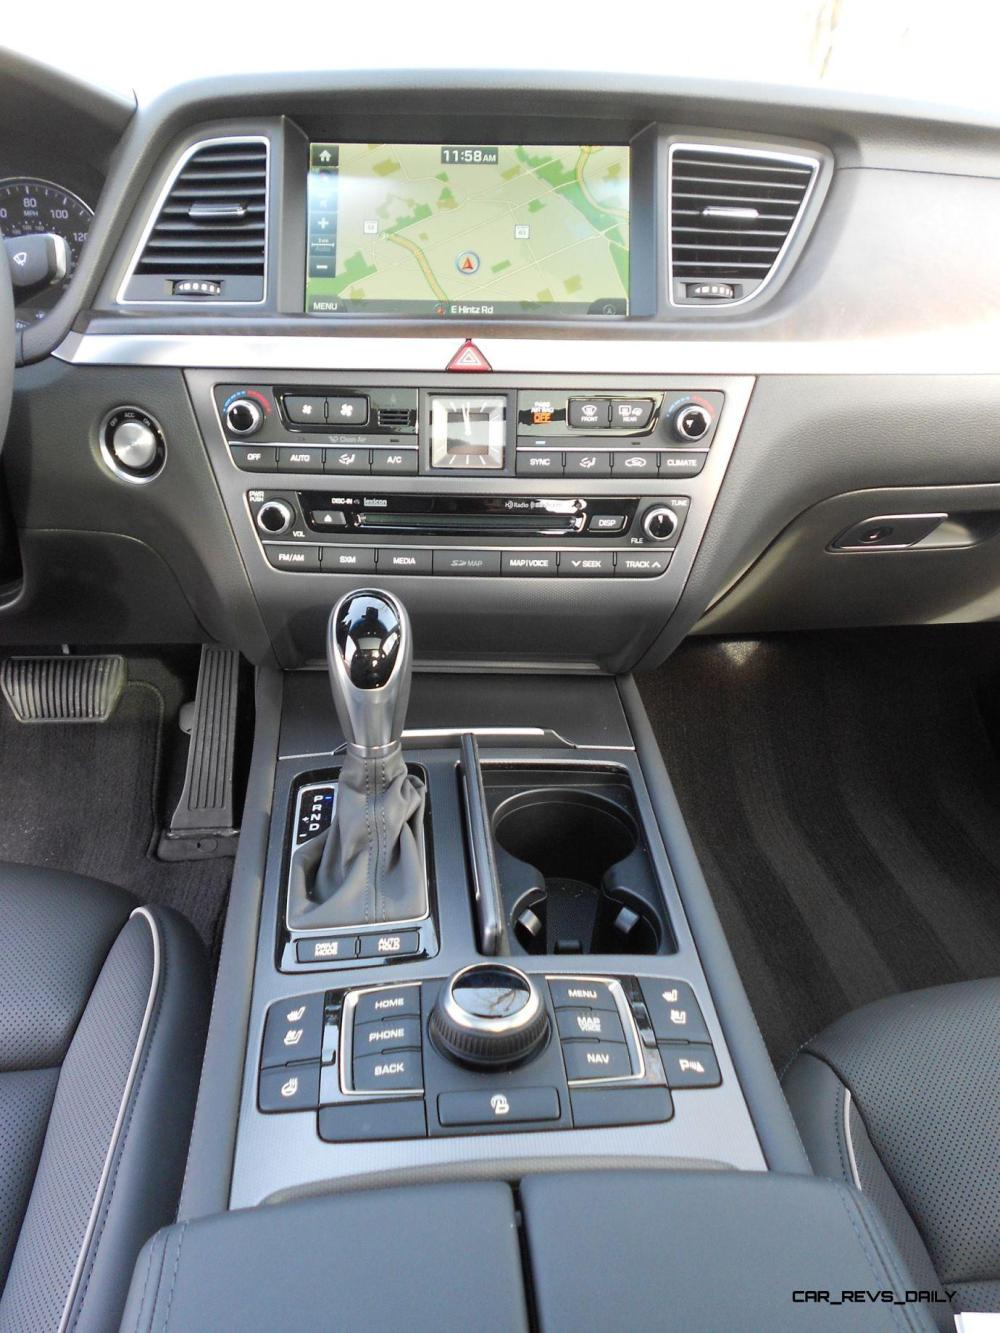 medium resolution of 2016 hyundai genesis awd 3 8 review interior 6